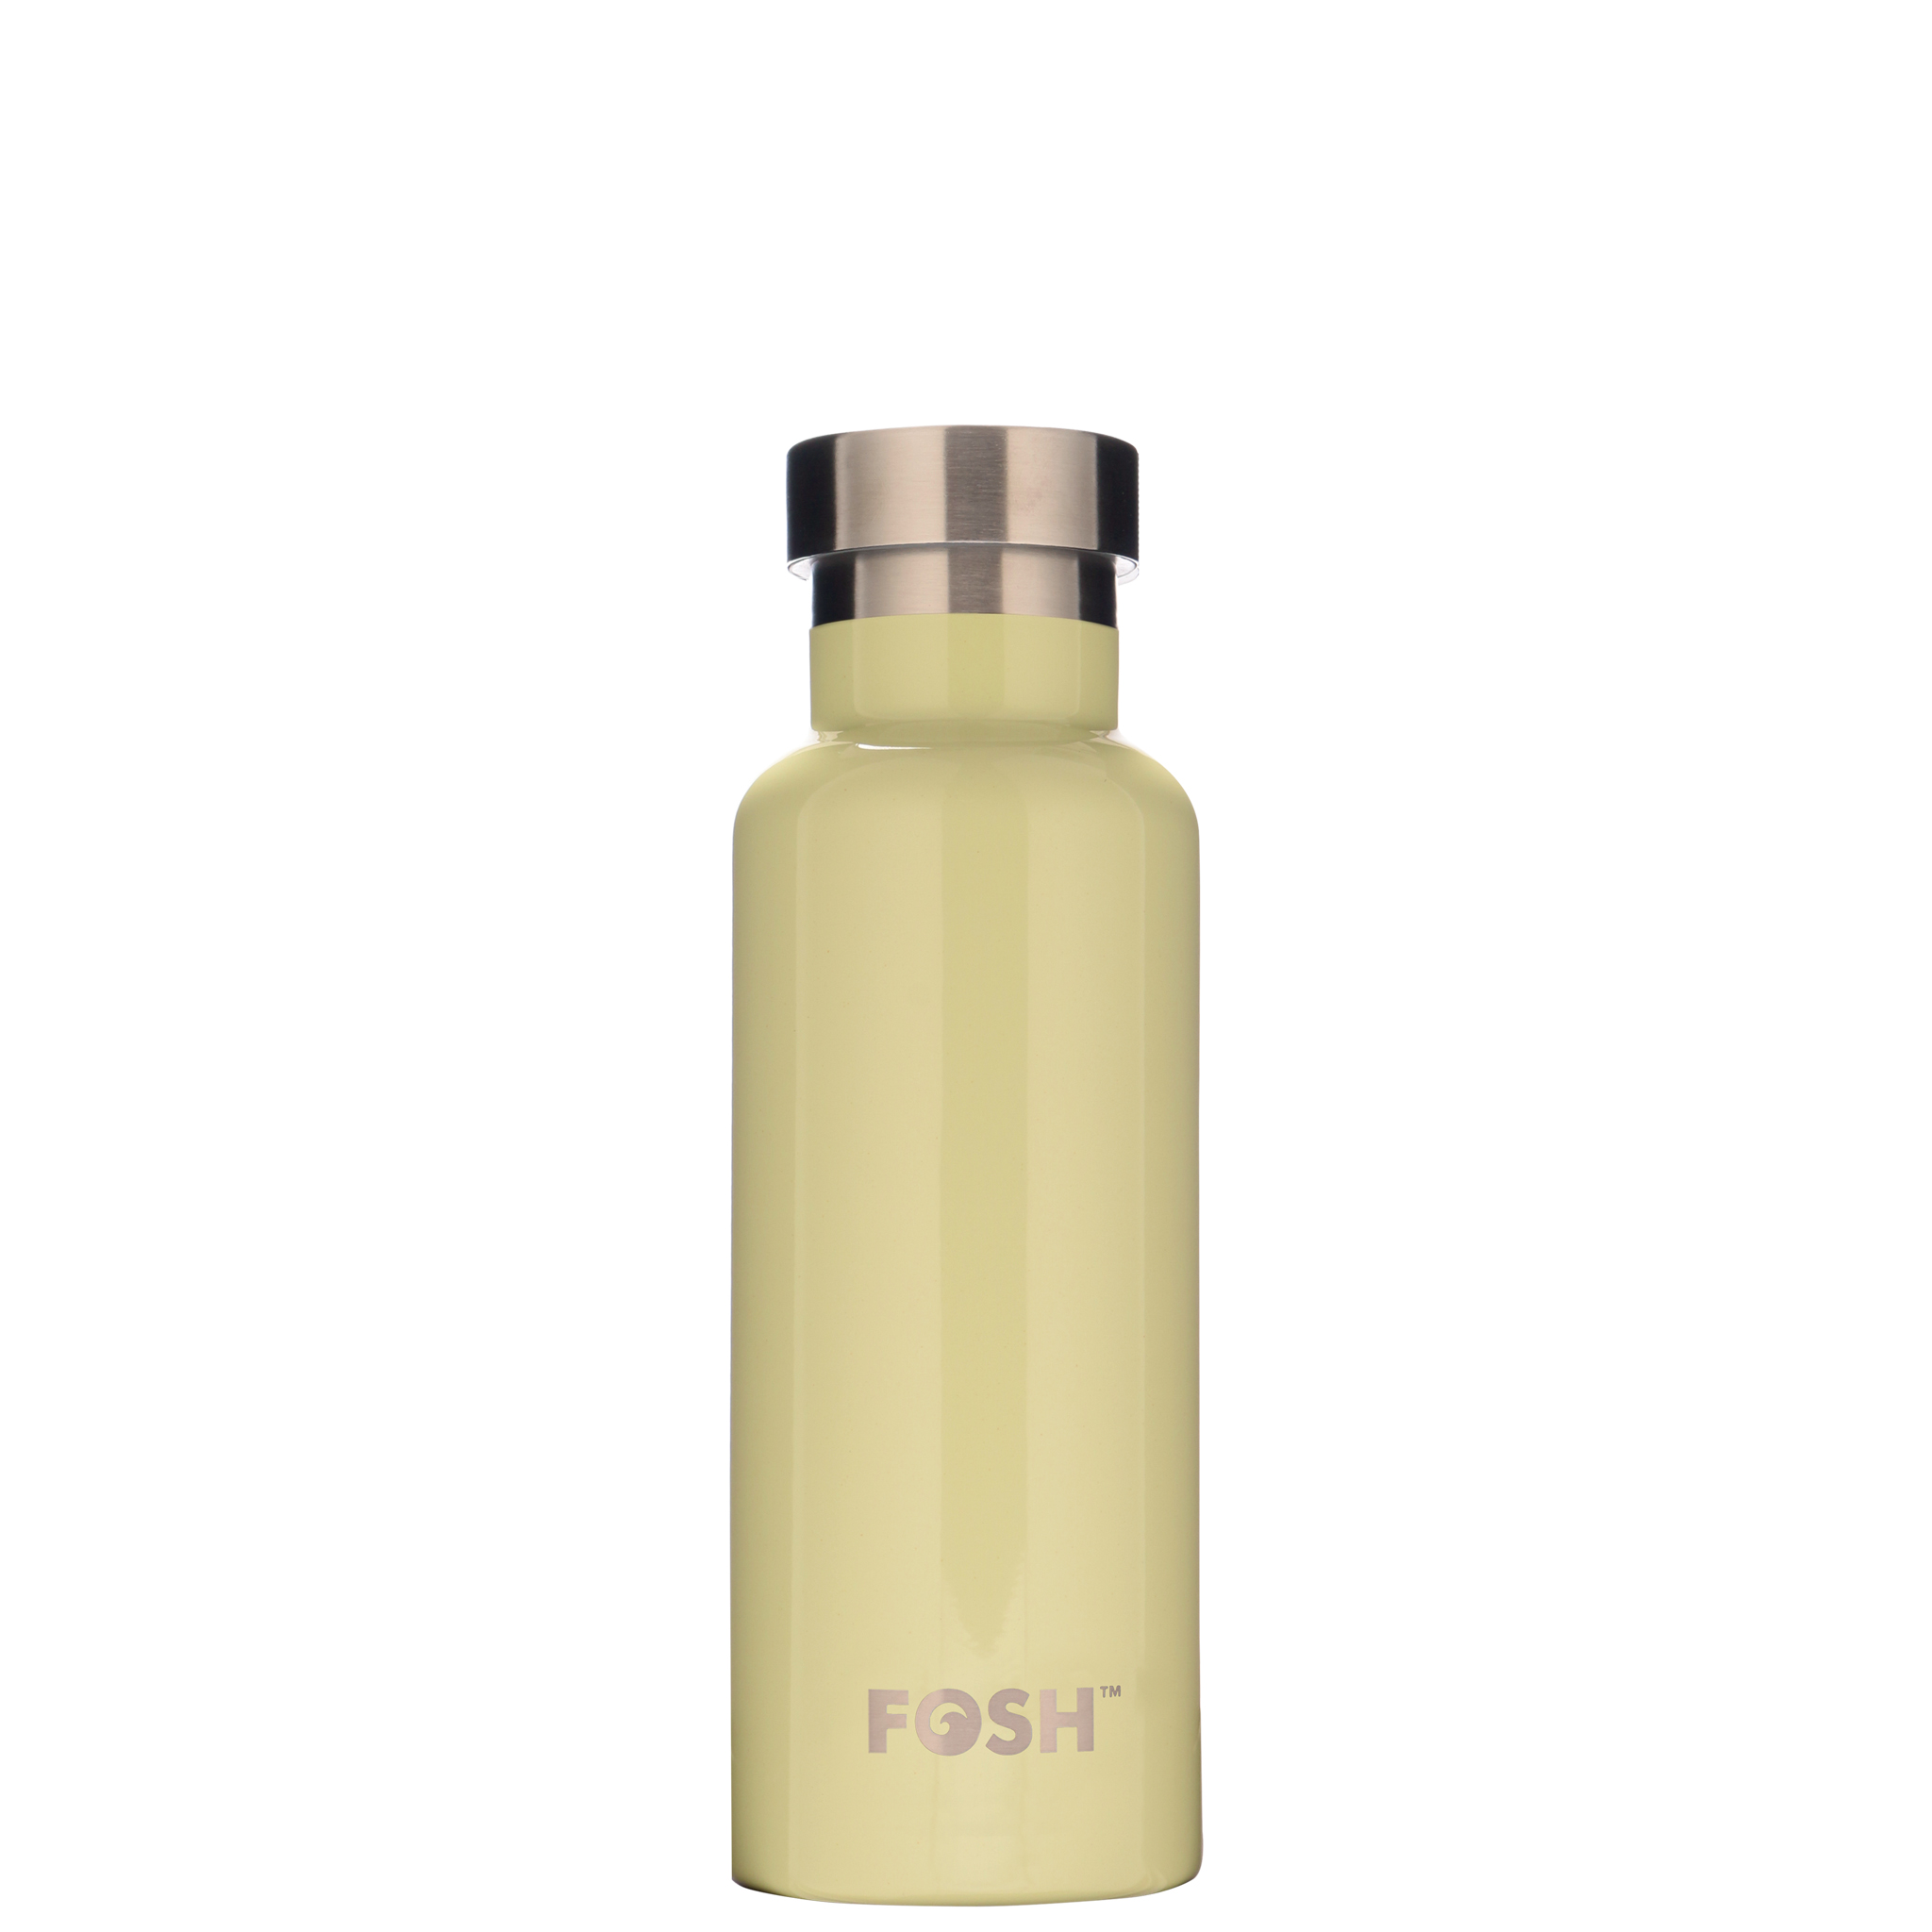 Stainless steel water bottle triple insulated pistachio gloss finish